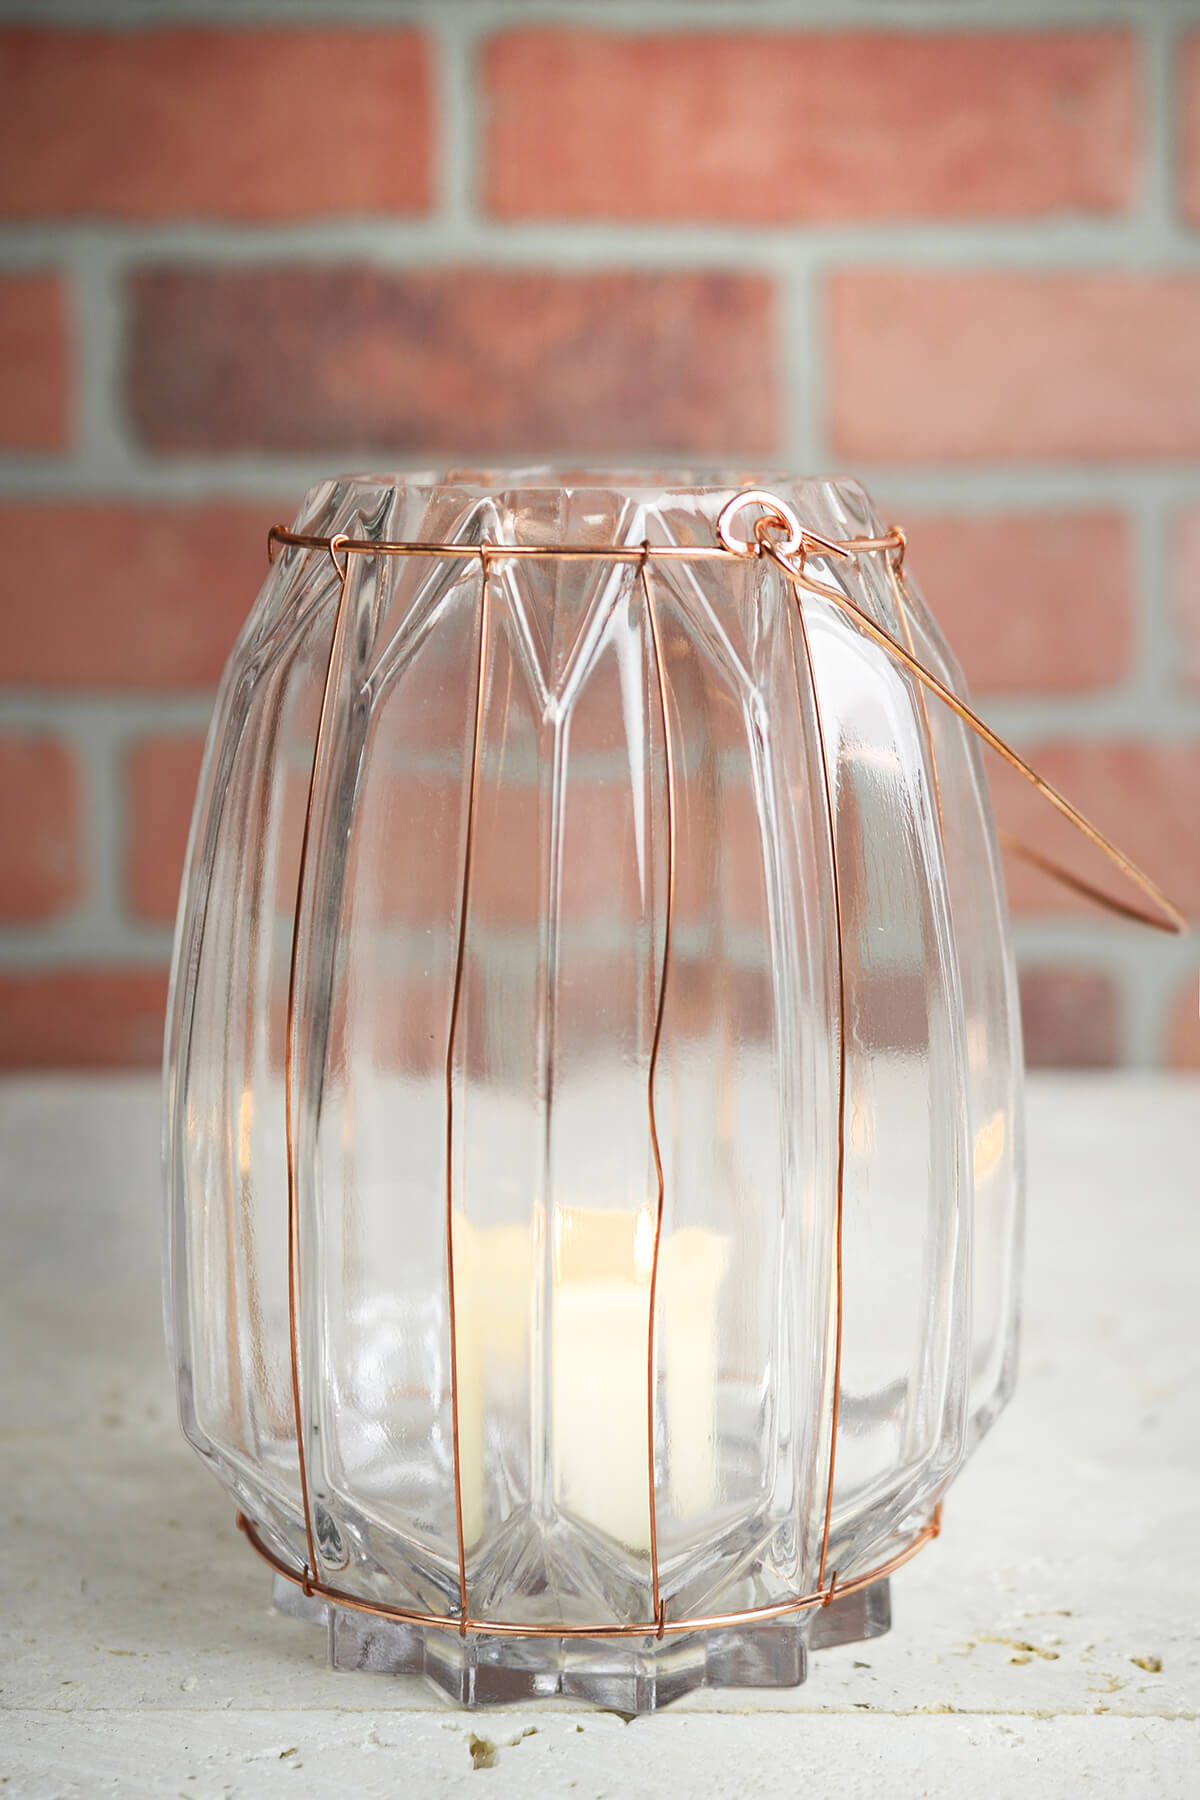 Chico Glass & Copper 7.5in Wire Vase & Candle Holder